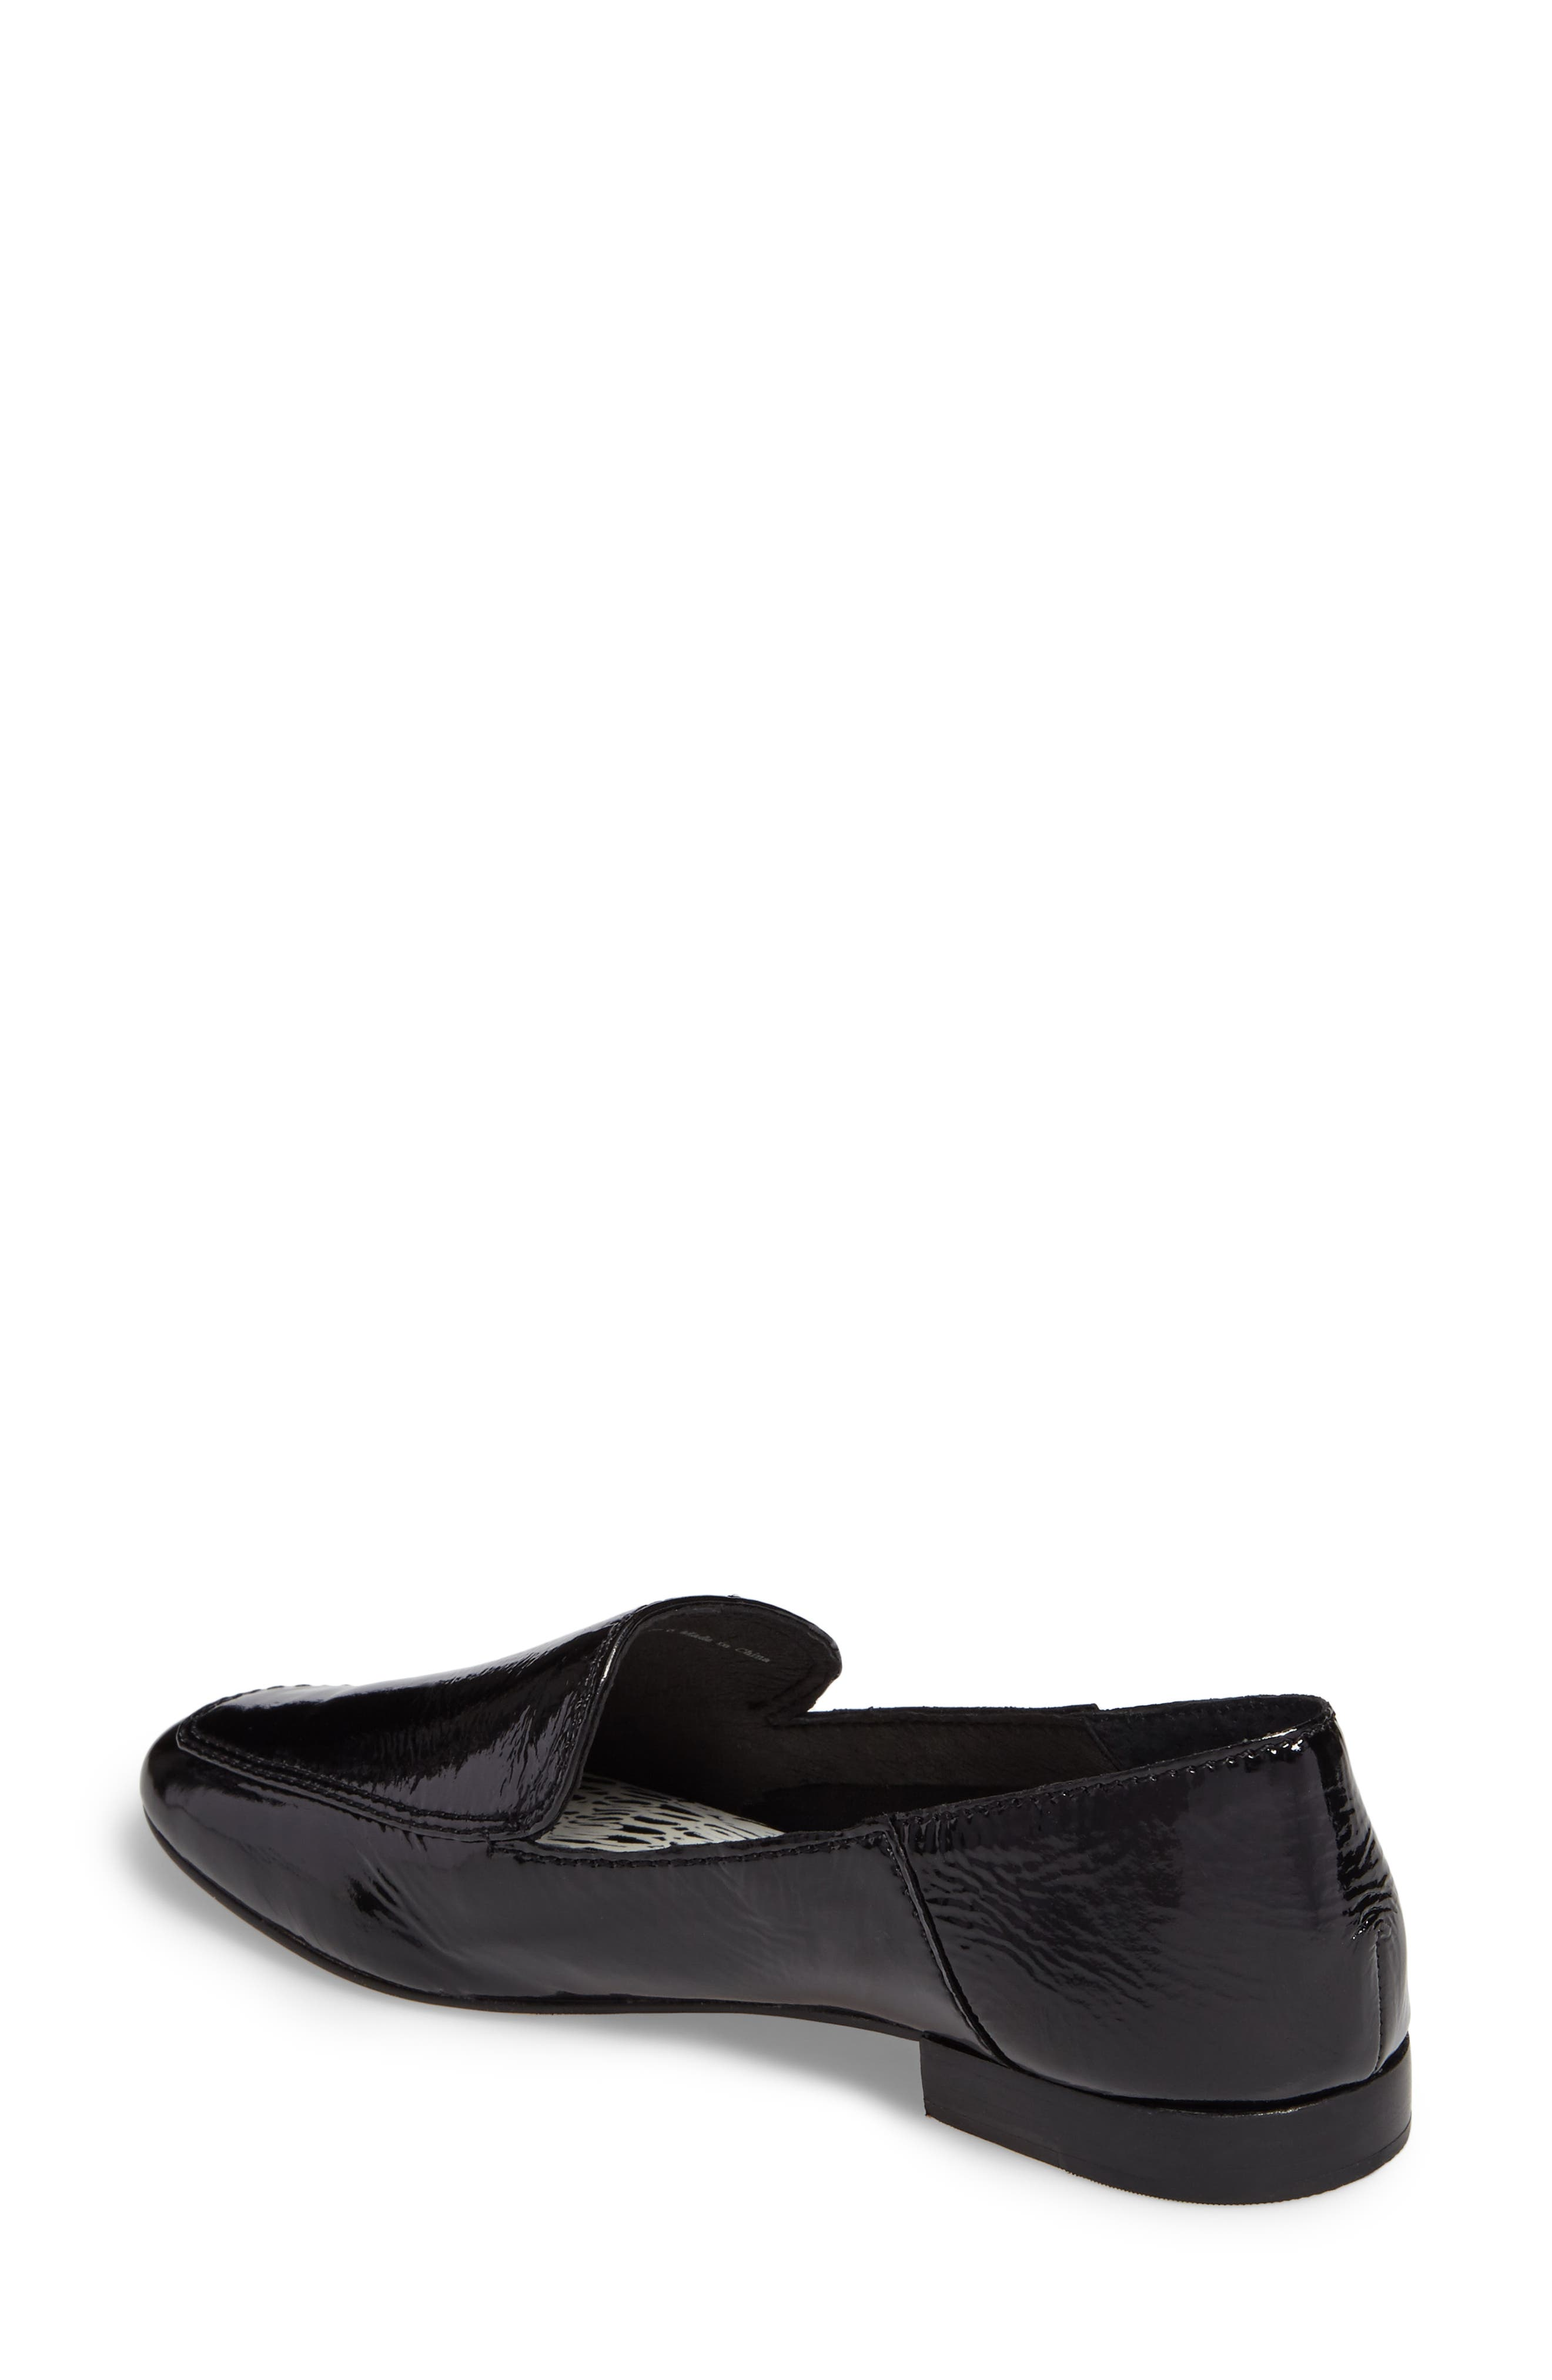 Camden Loafer,                             Alternate thumbnail 2, color,                             Onyx Patent Leather